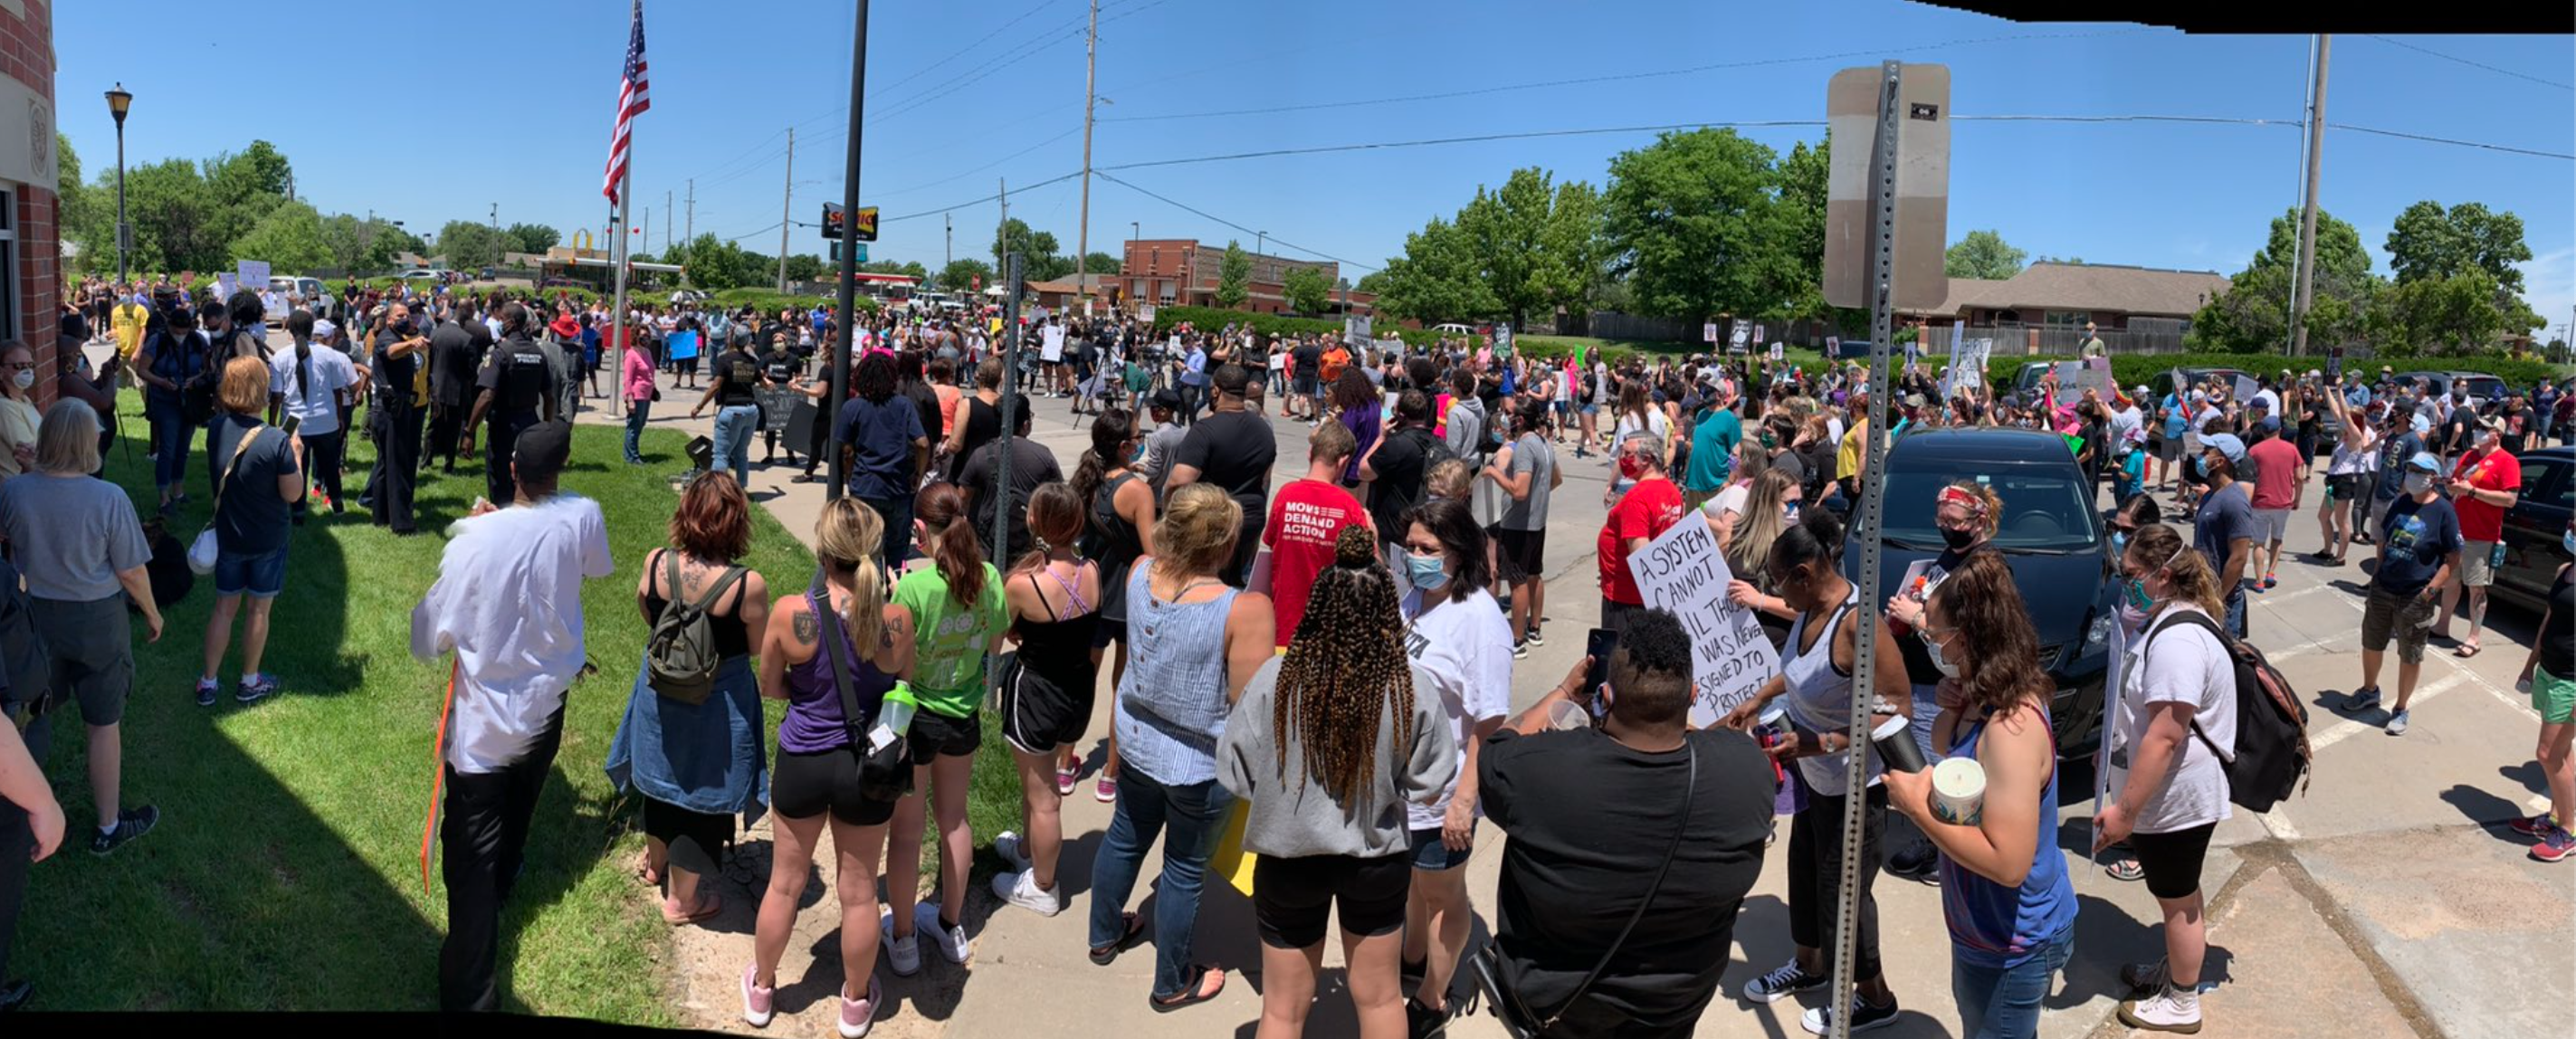 George Floyd protest near the Wichita State University campus.